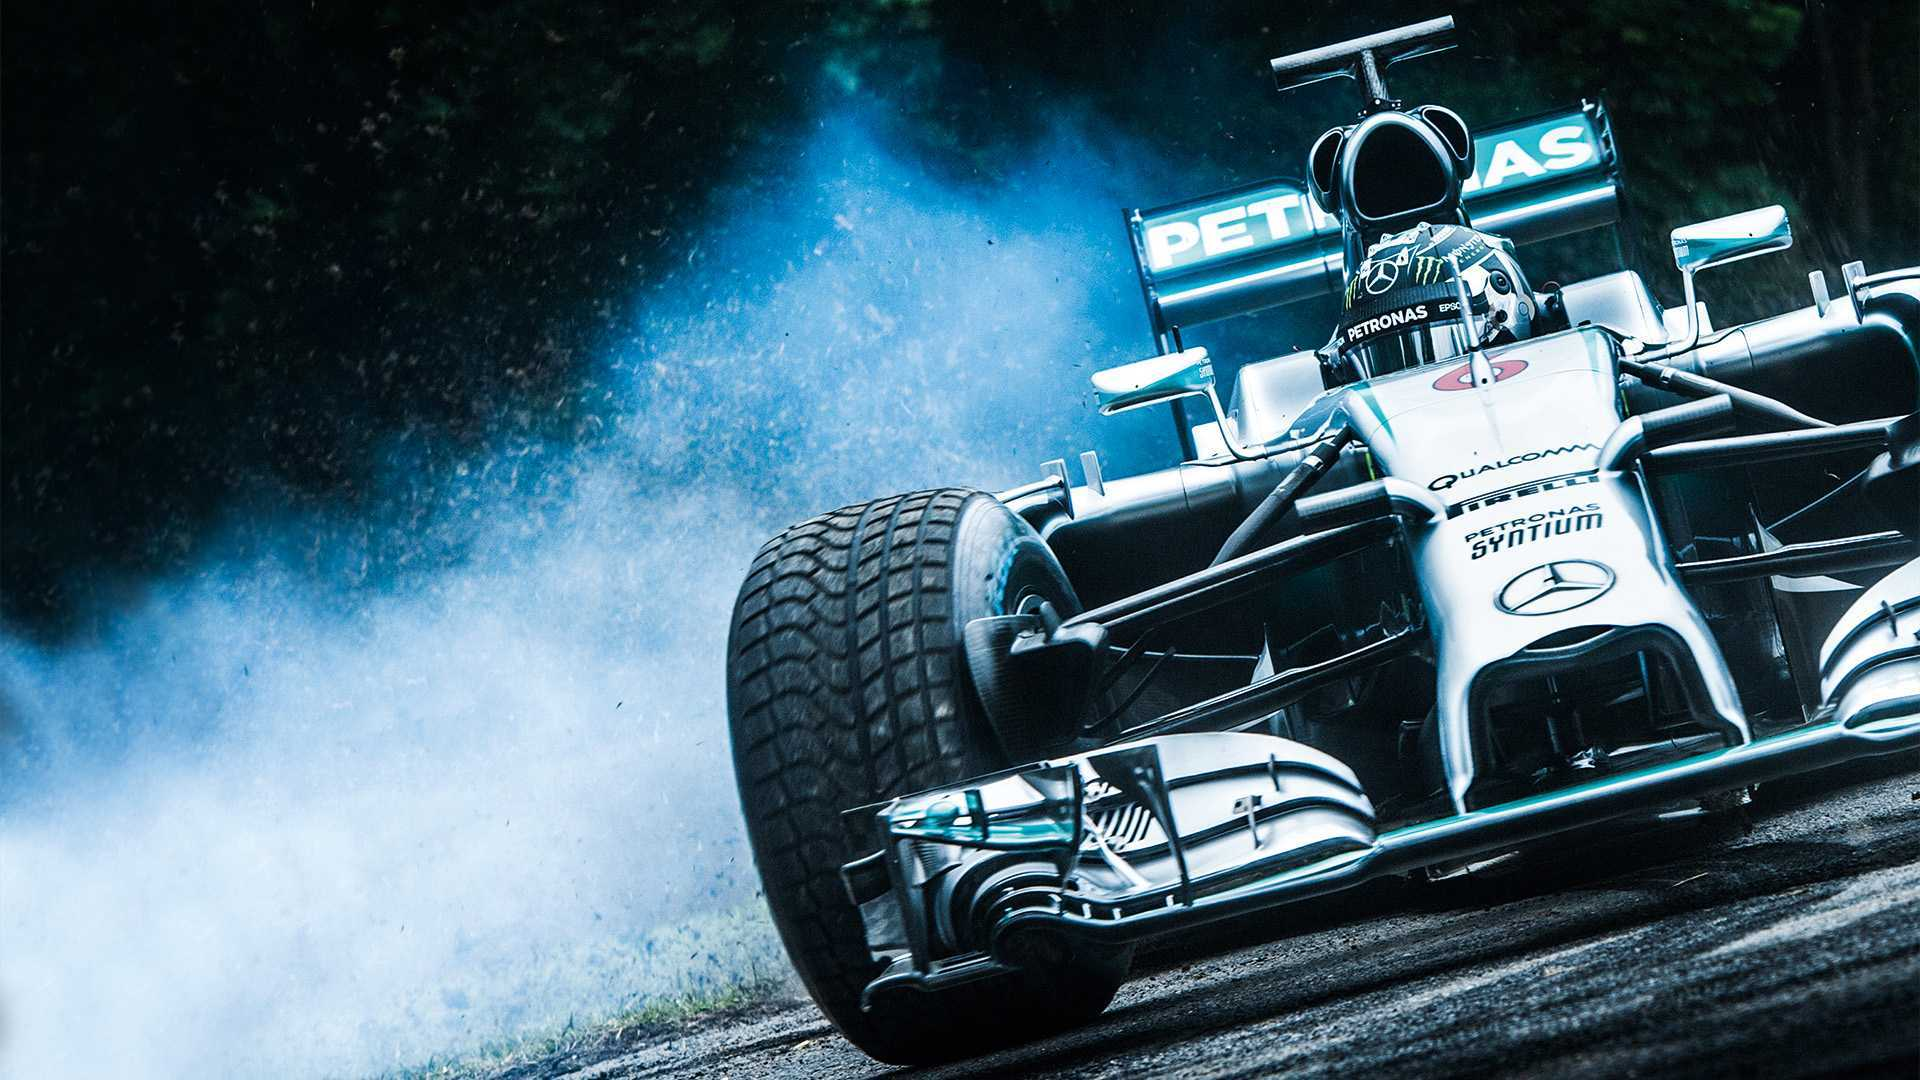 Goodwood Festival of Speed 2018 Mercedes Formula 1